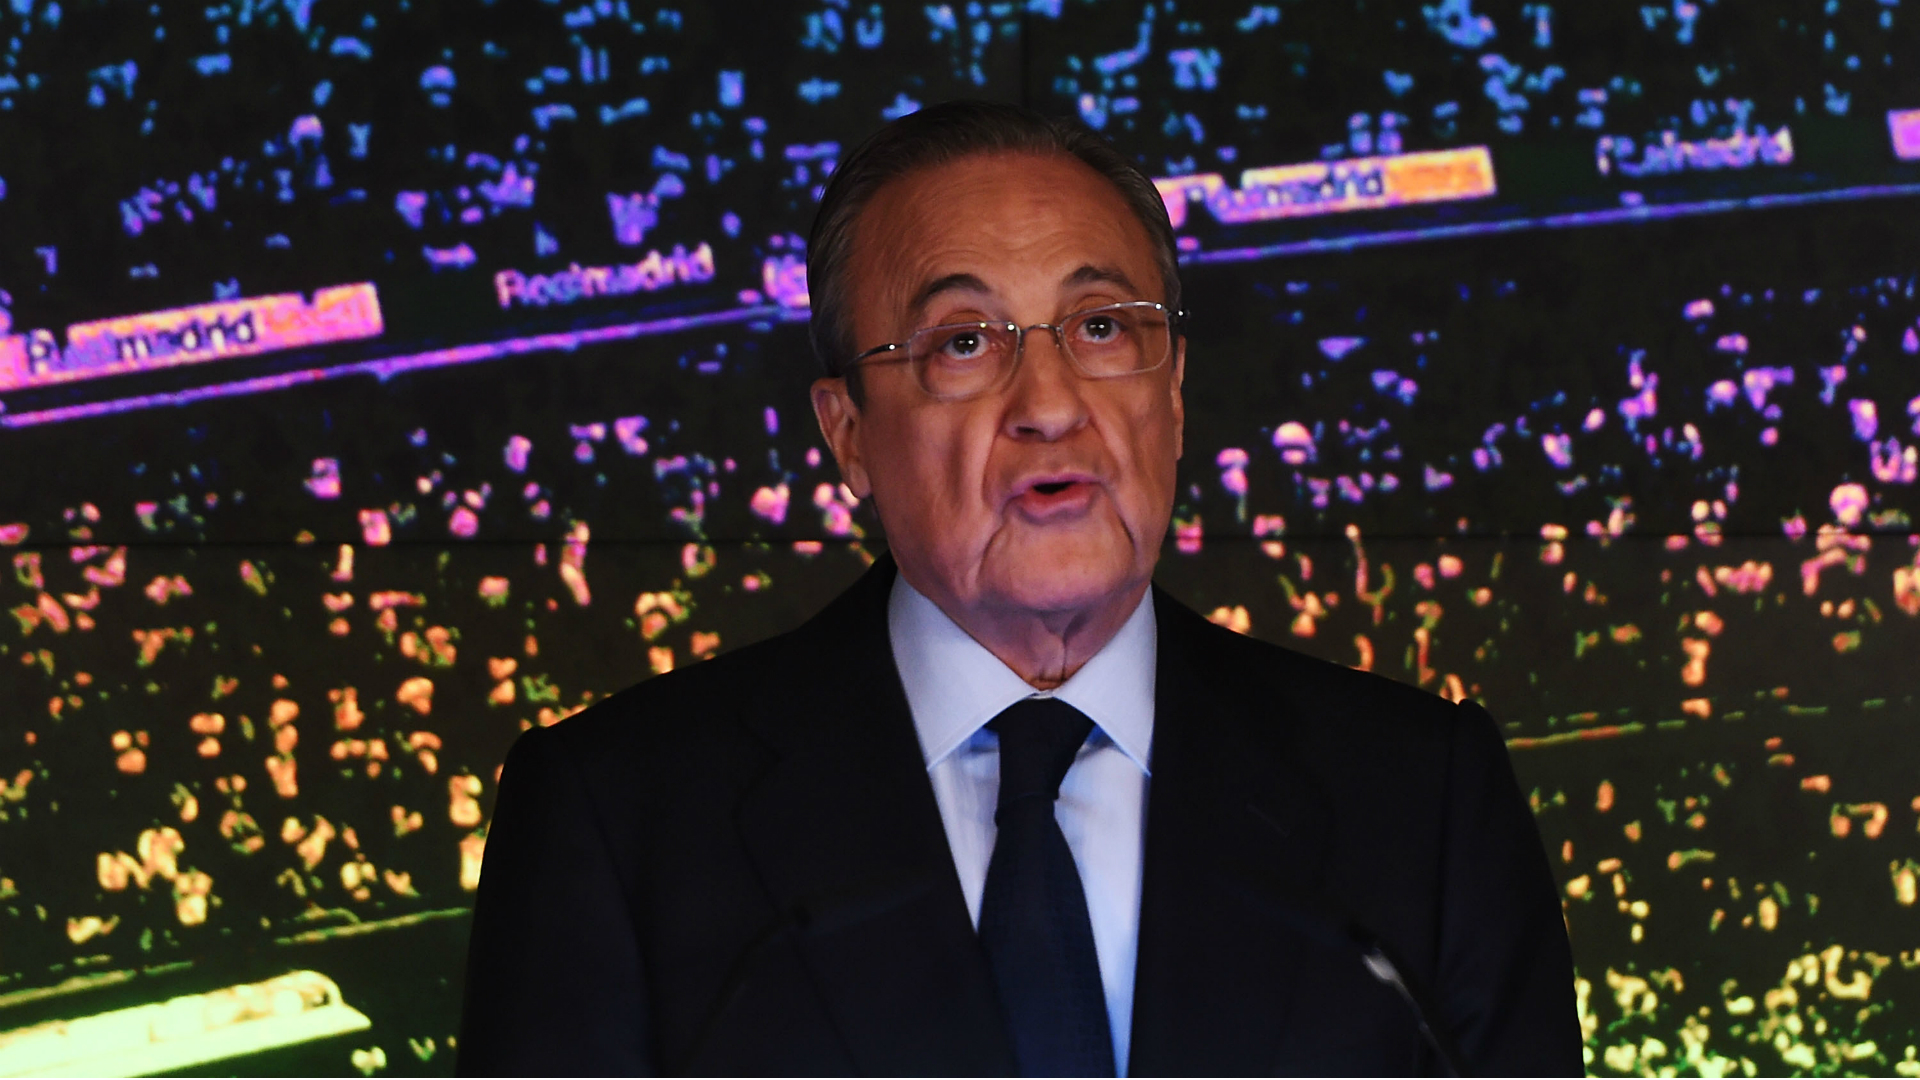 Real Madrid in the NBA? President Florentino Perez has asked for Eastern Conference spot